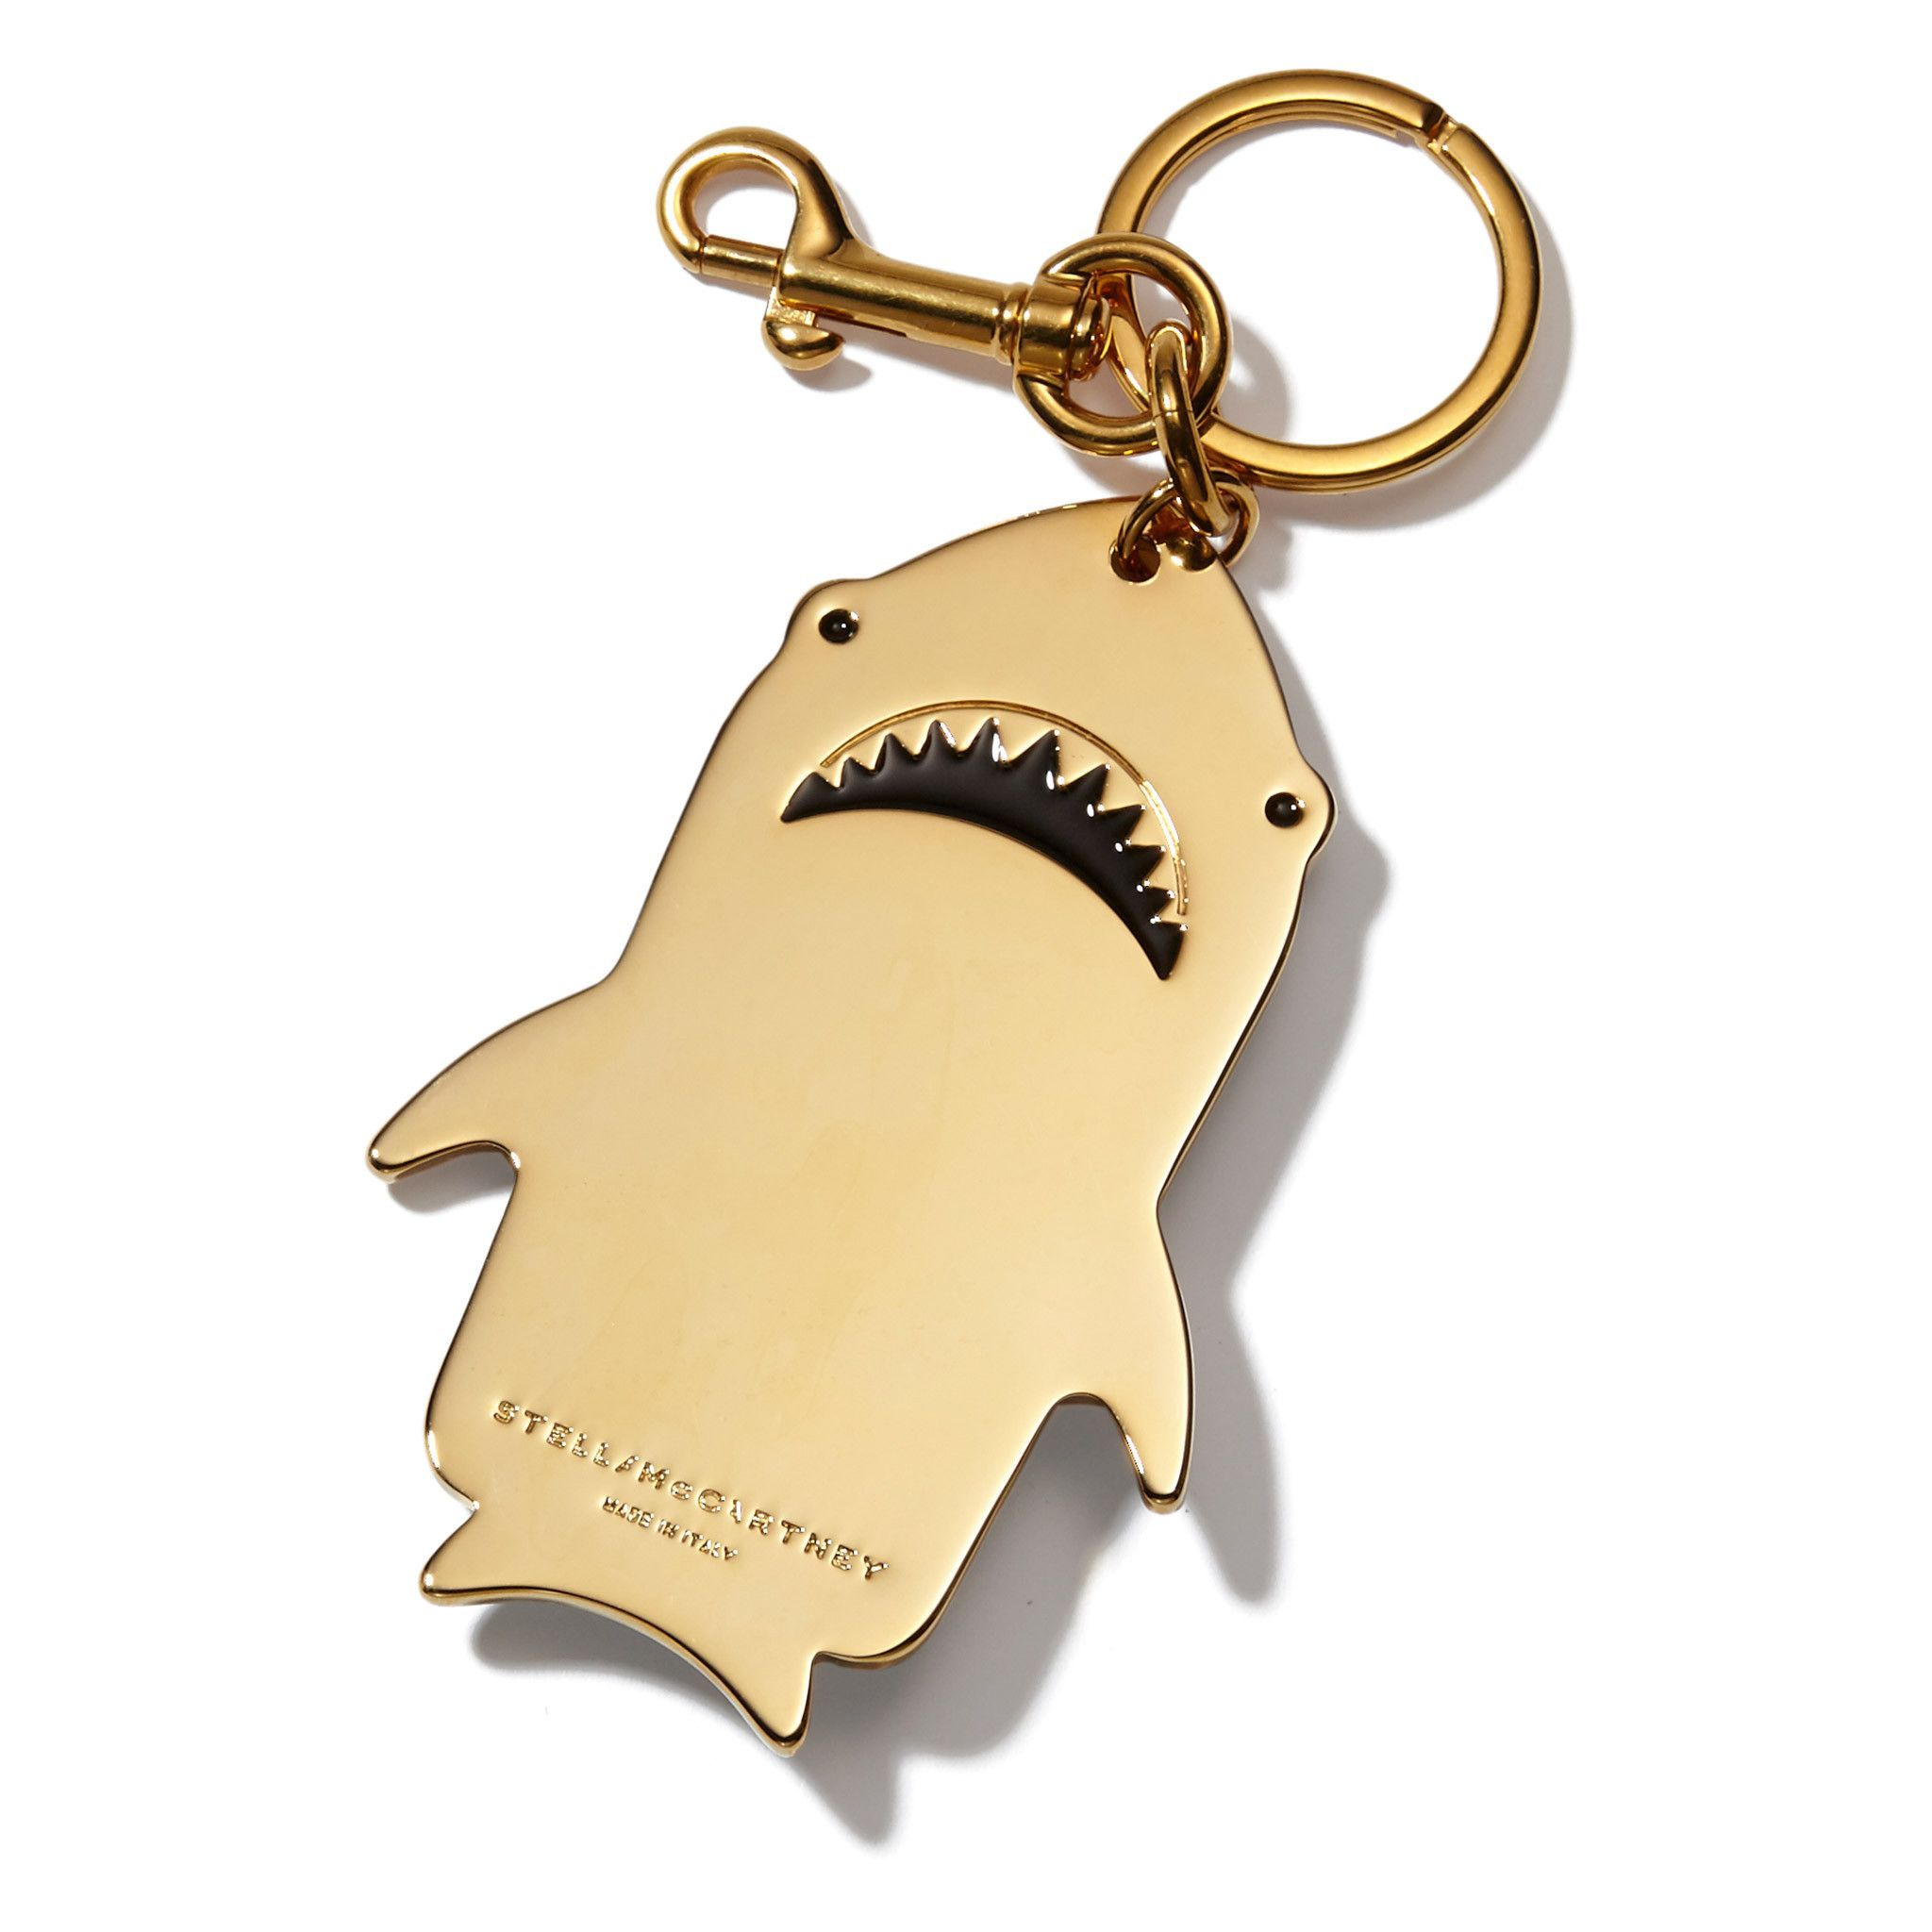 Stella Mccartney Shark Keychain In Gold Shark Shark Accessories